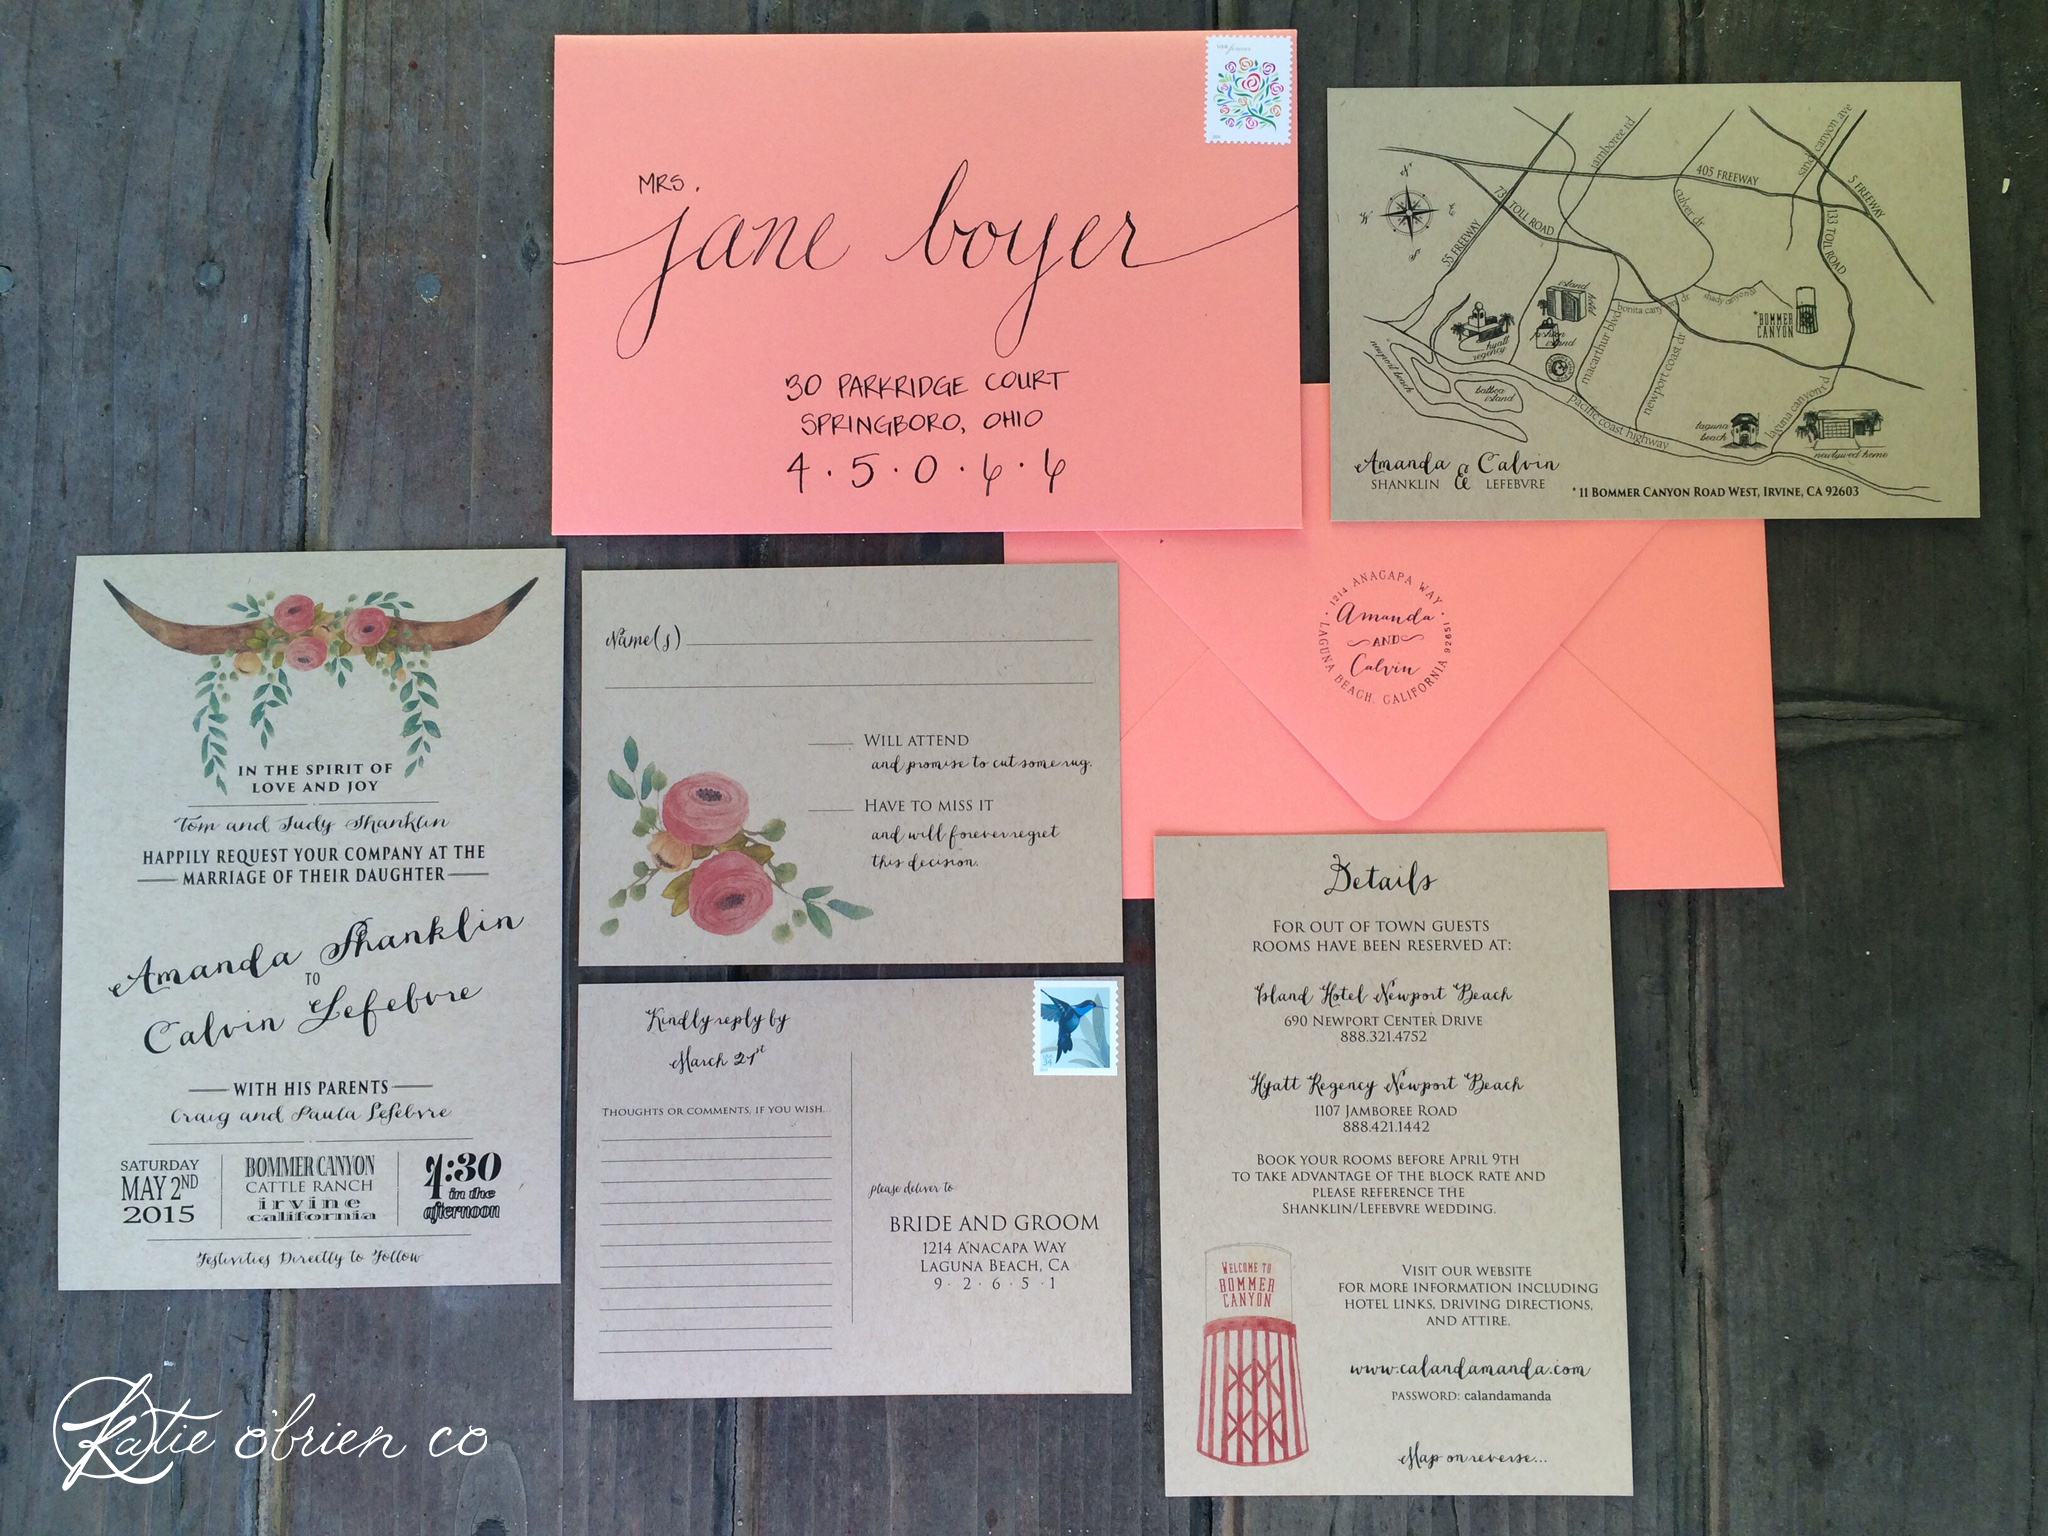 KOD - Peach Flower Invite Suite.jpg